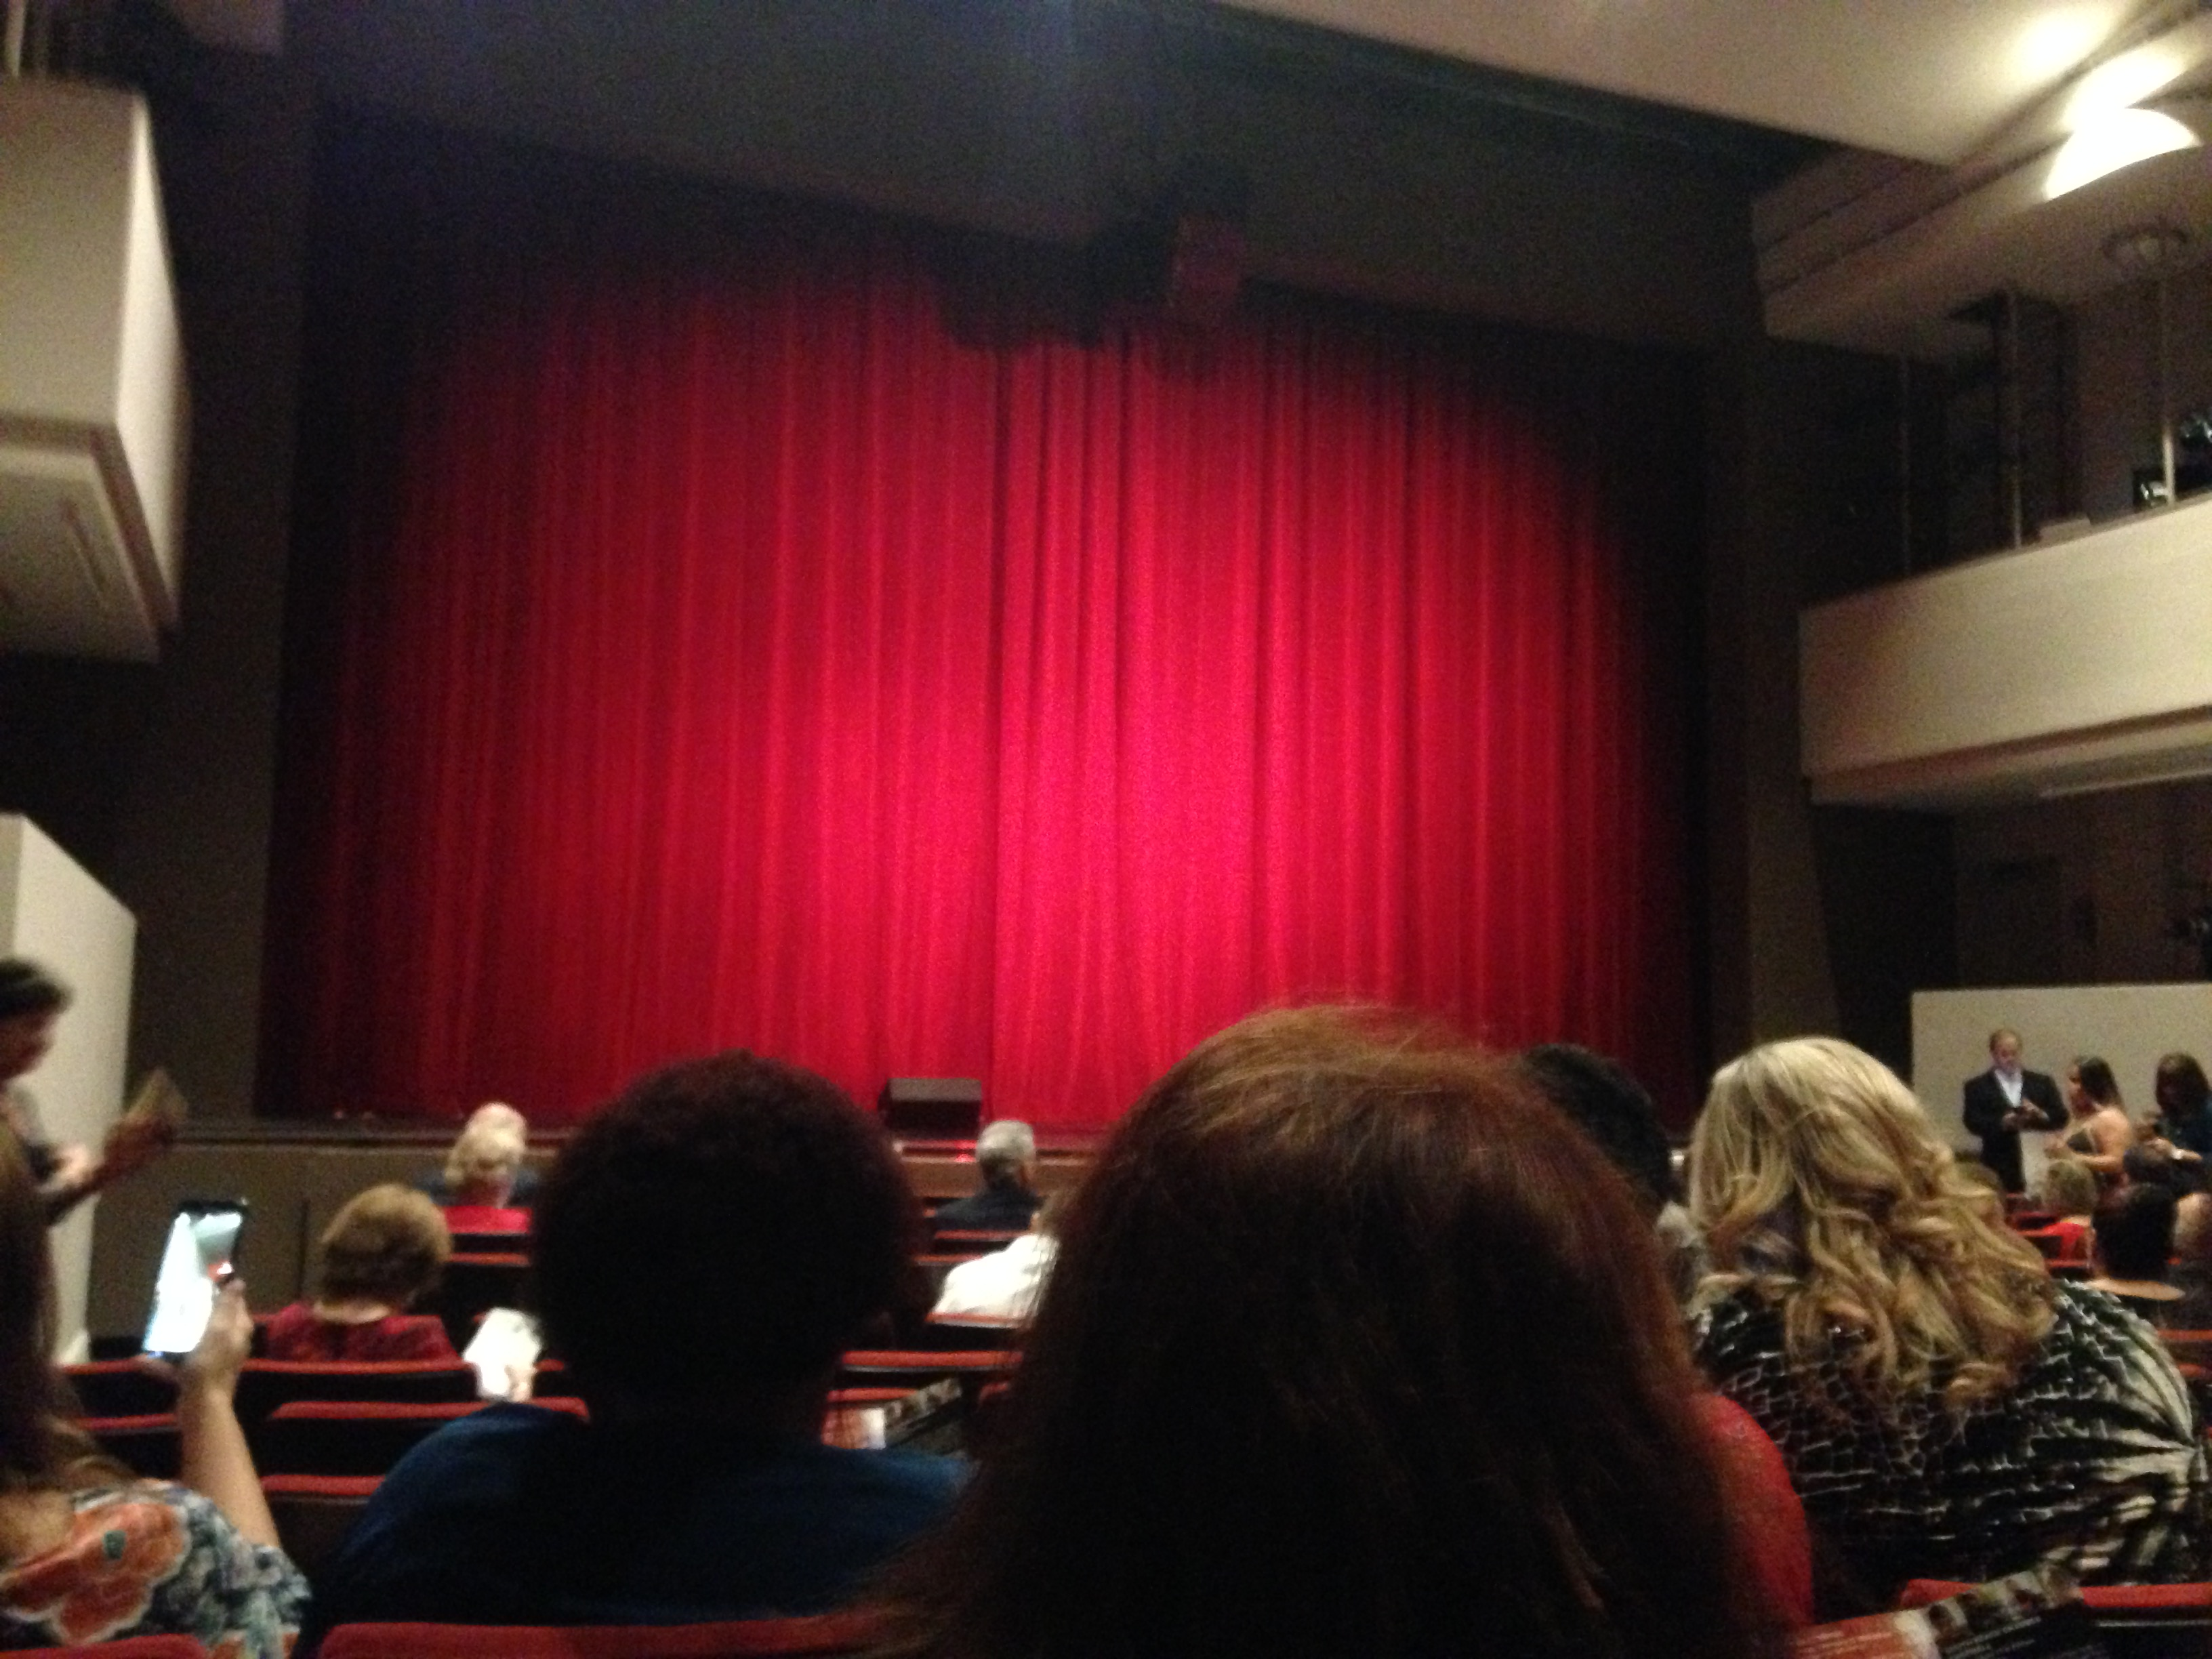 The crowd coming in for opening night of the Seminole Theater Dec 12, 2015